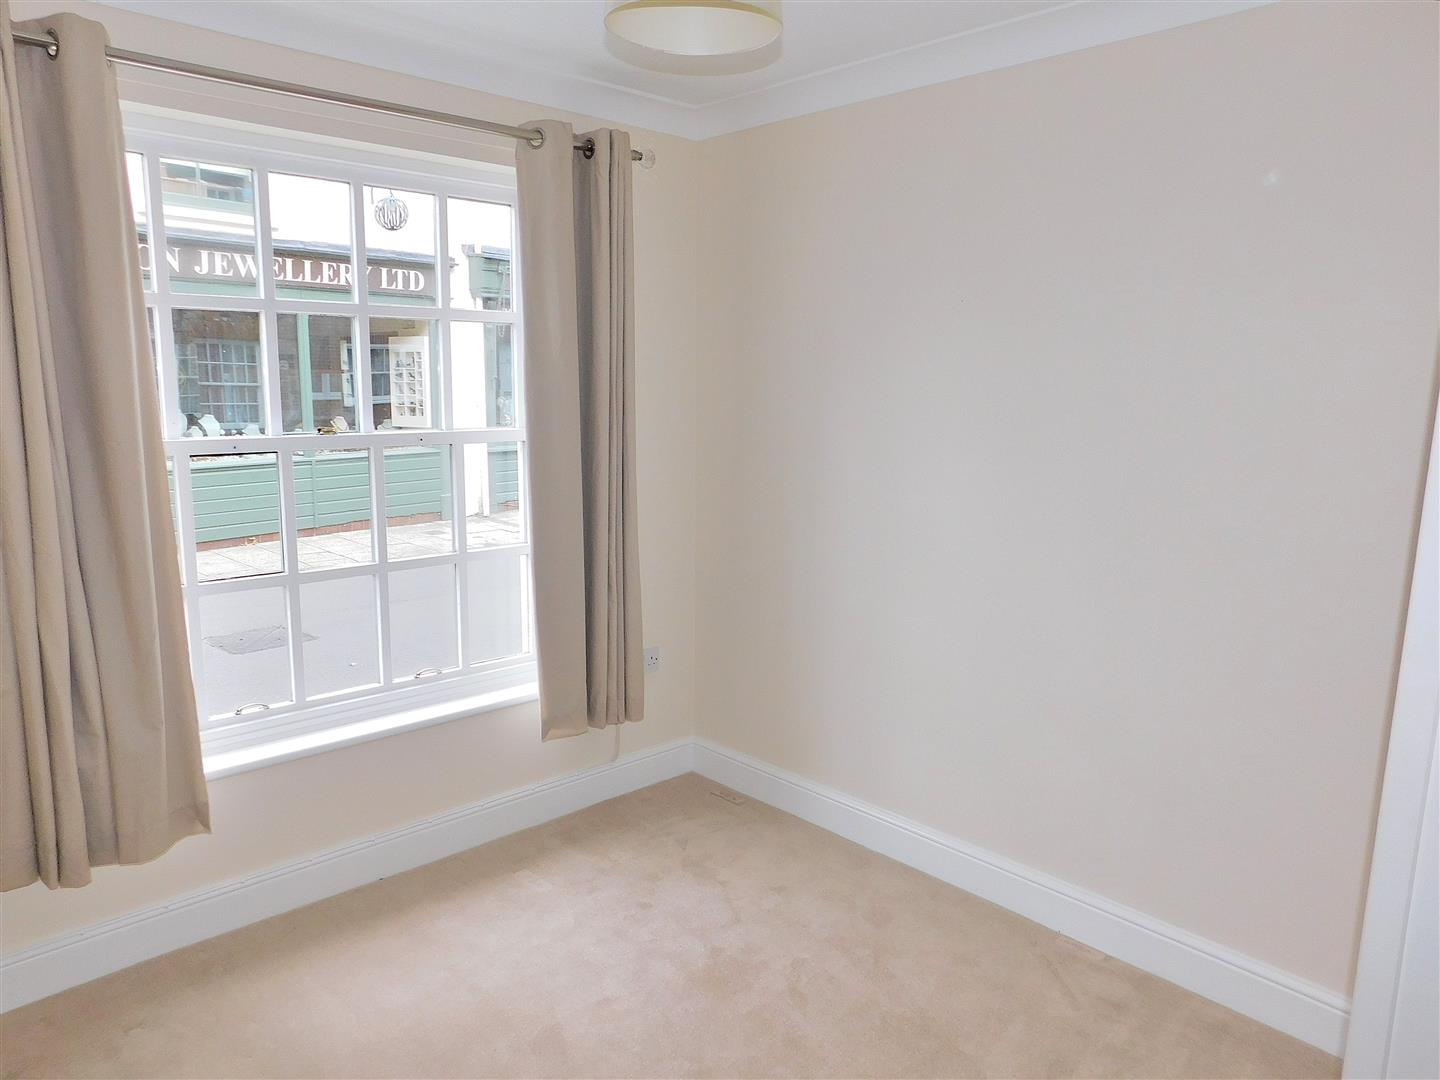 2 bed flat for sale in King's Lynn, PE30 1EG  - Property Image 8